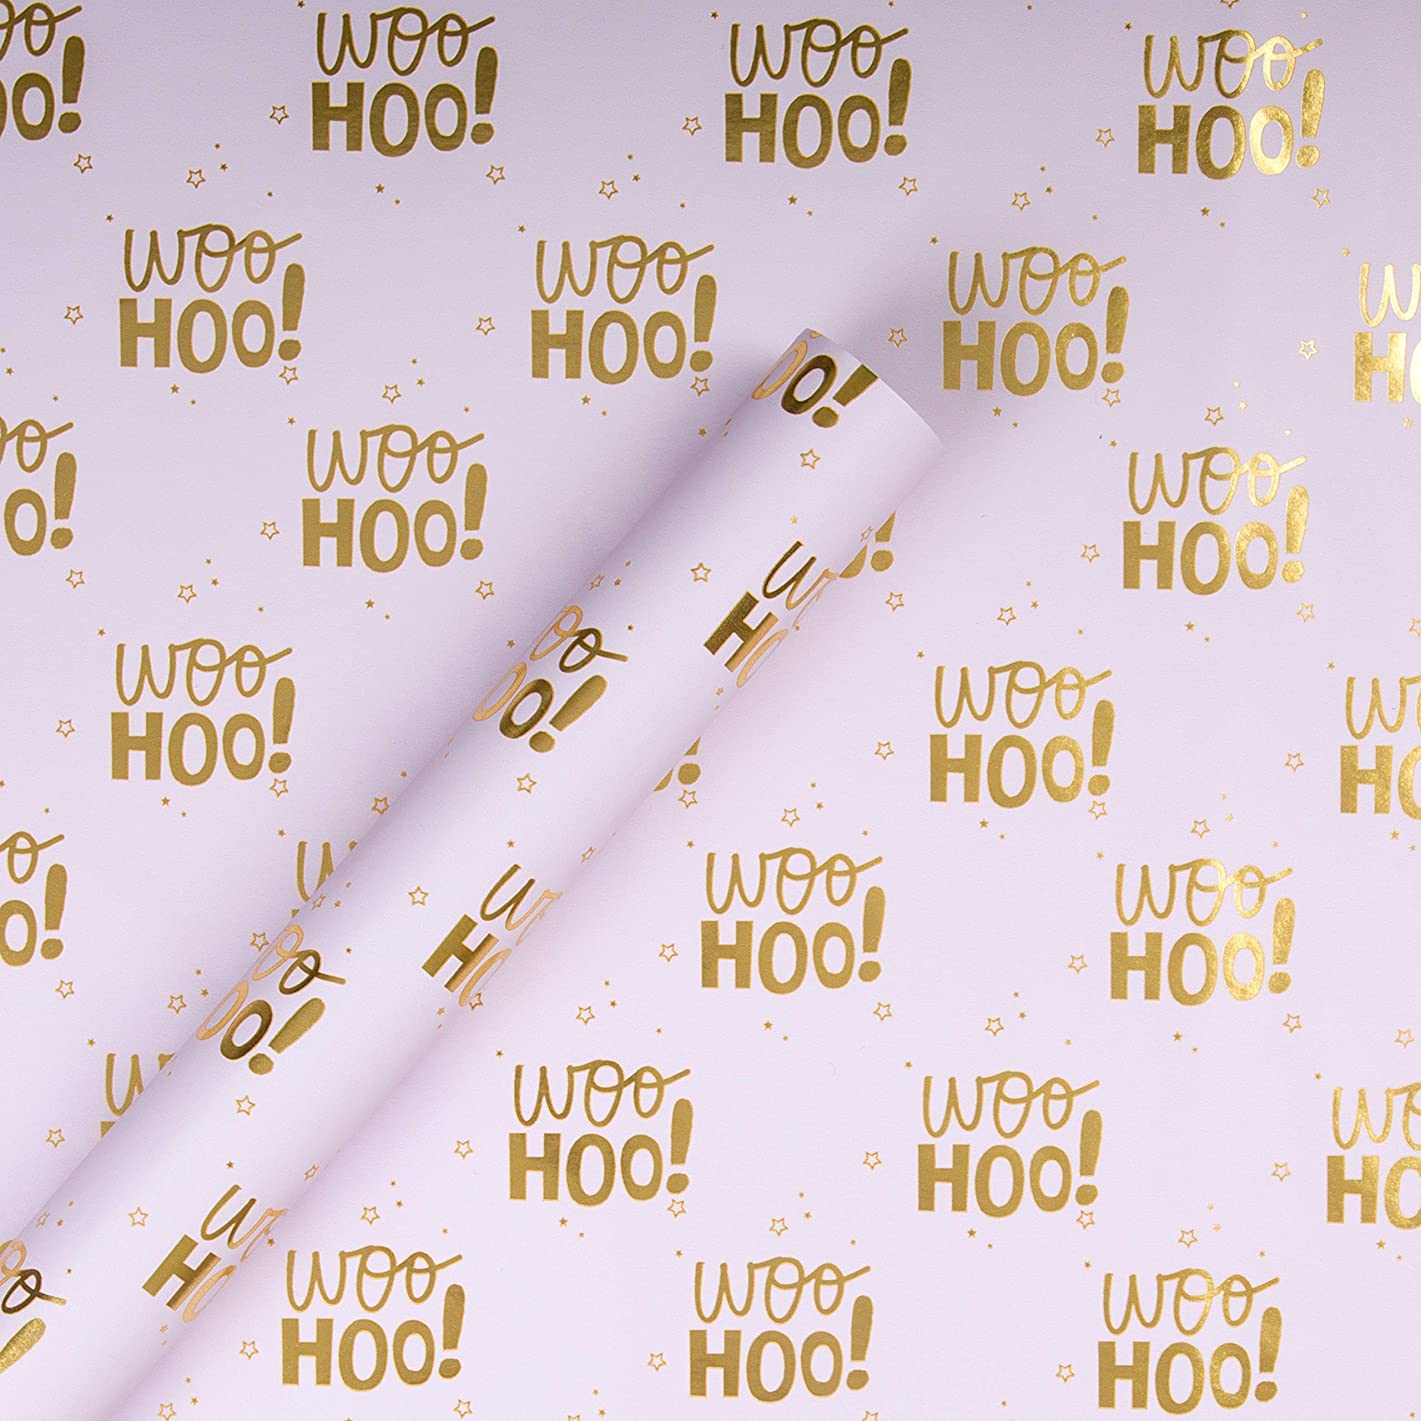 Multi-Occasion Reversible Wrapping Paper from Hallmark 'Woo Hoo' - 2m Roll (Birthday, Wedding, Engagement)